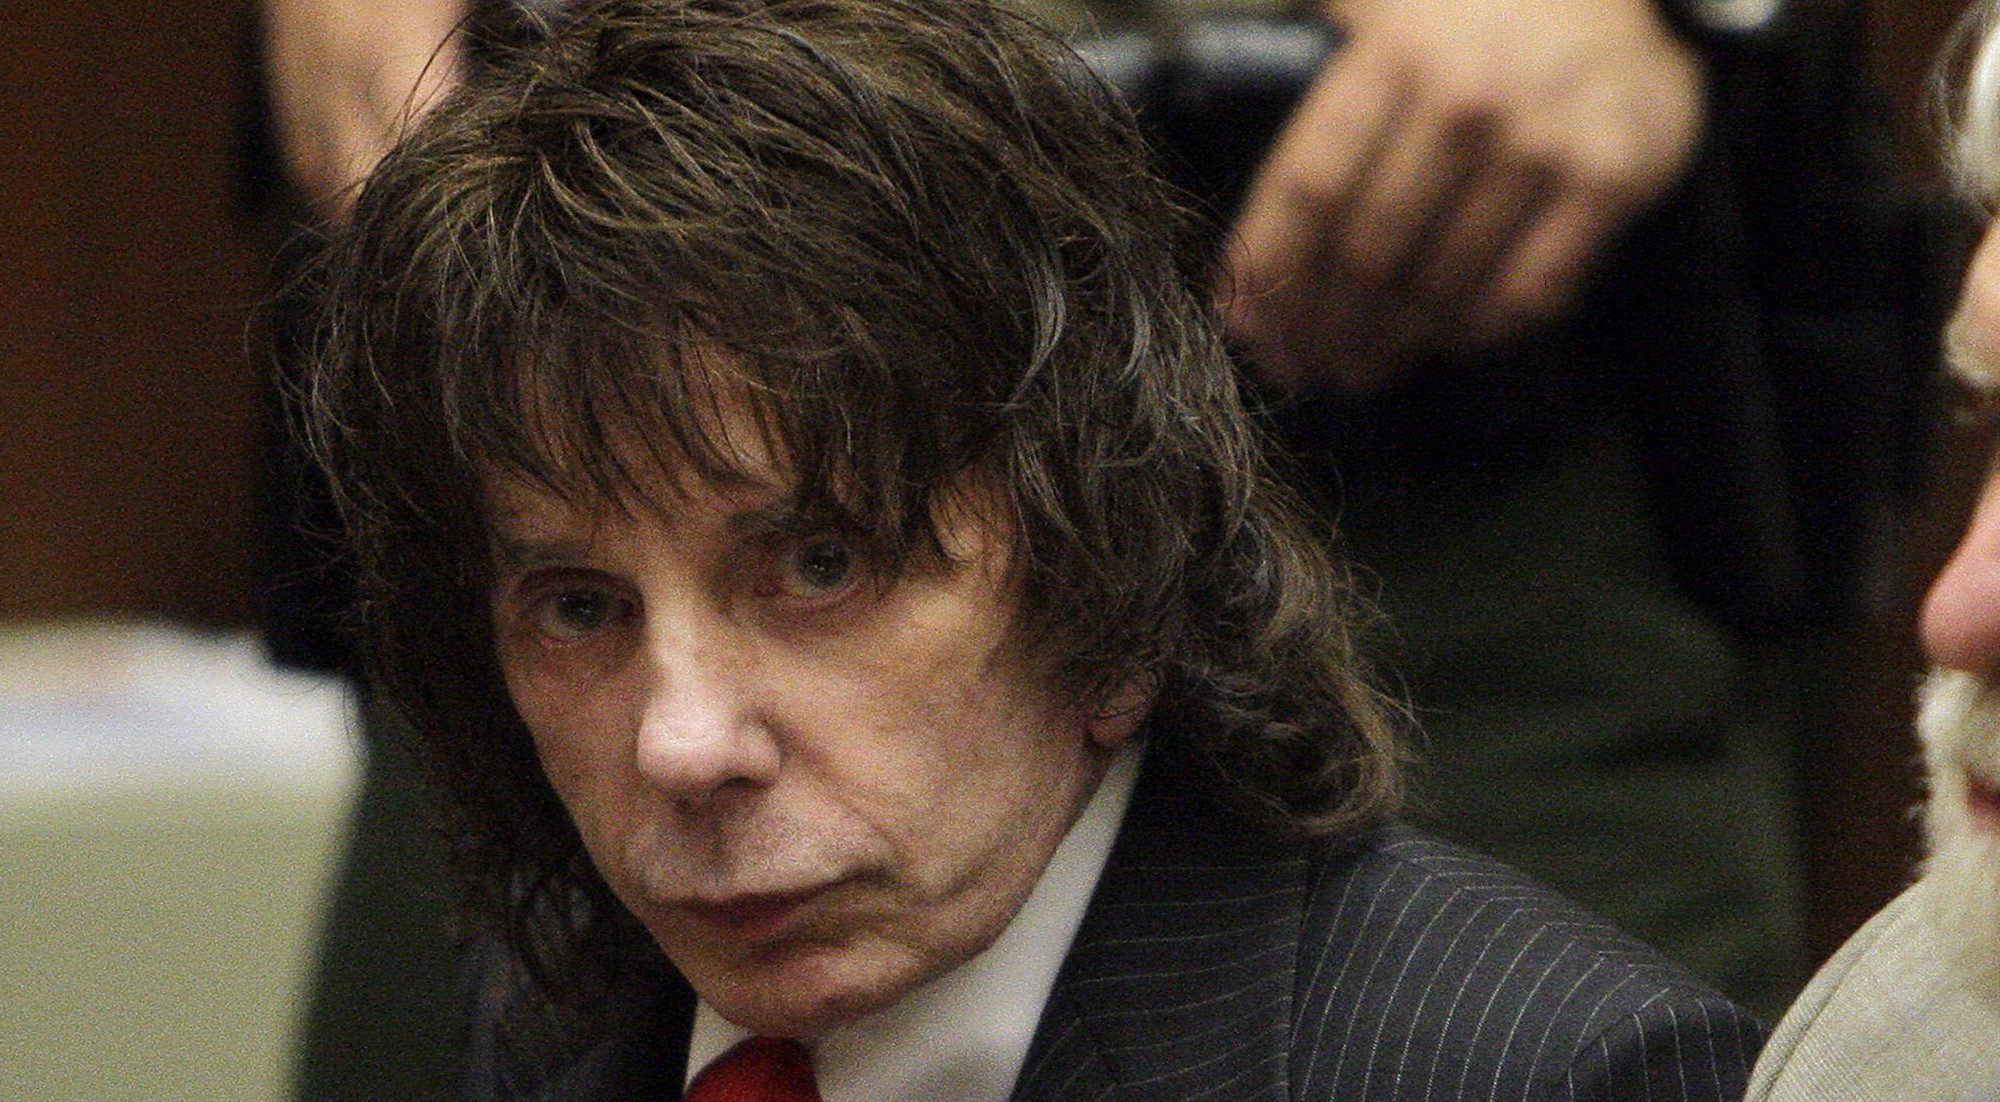 Phil Spector by Getty Images